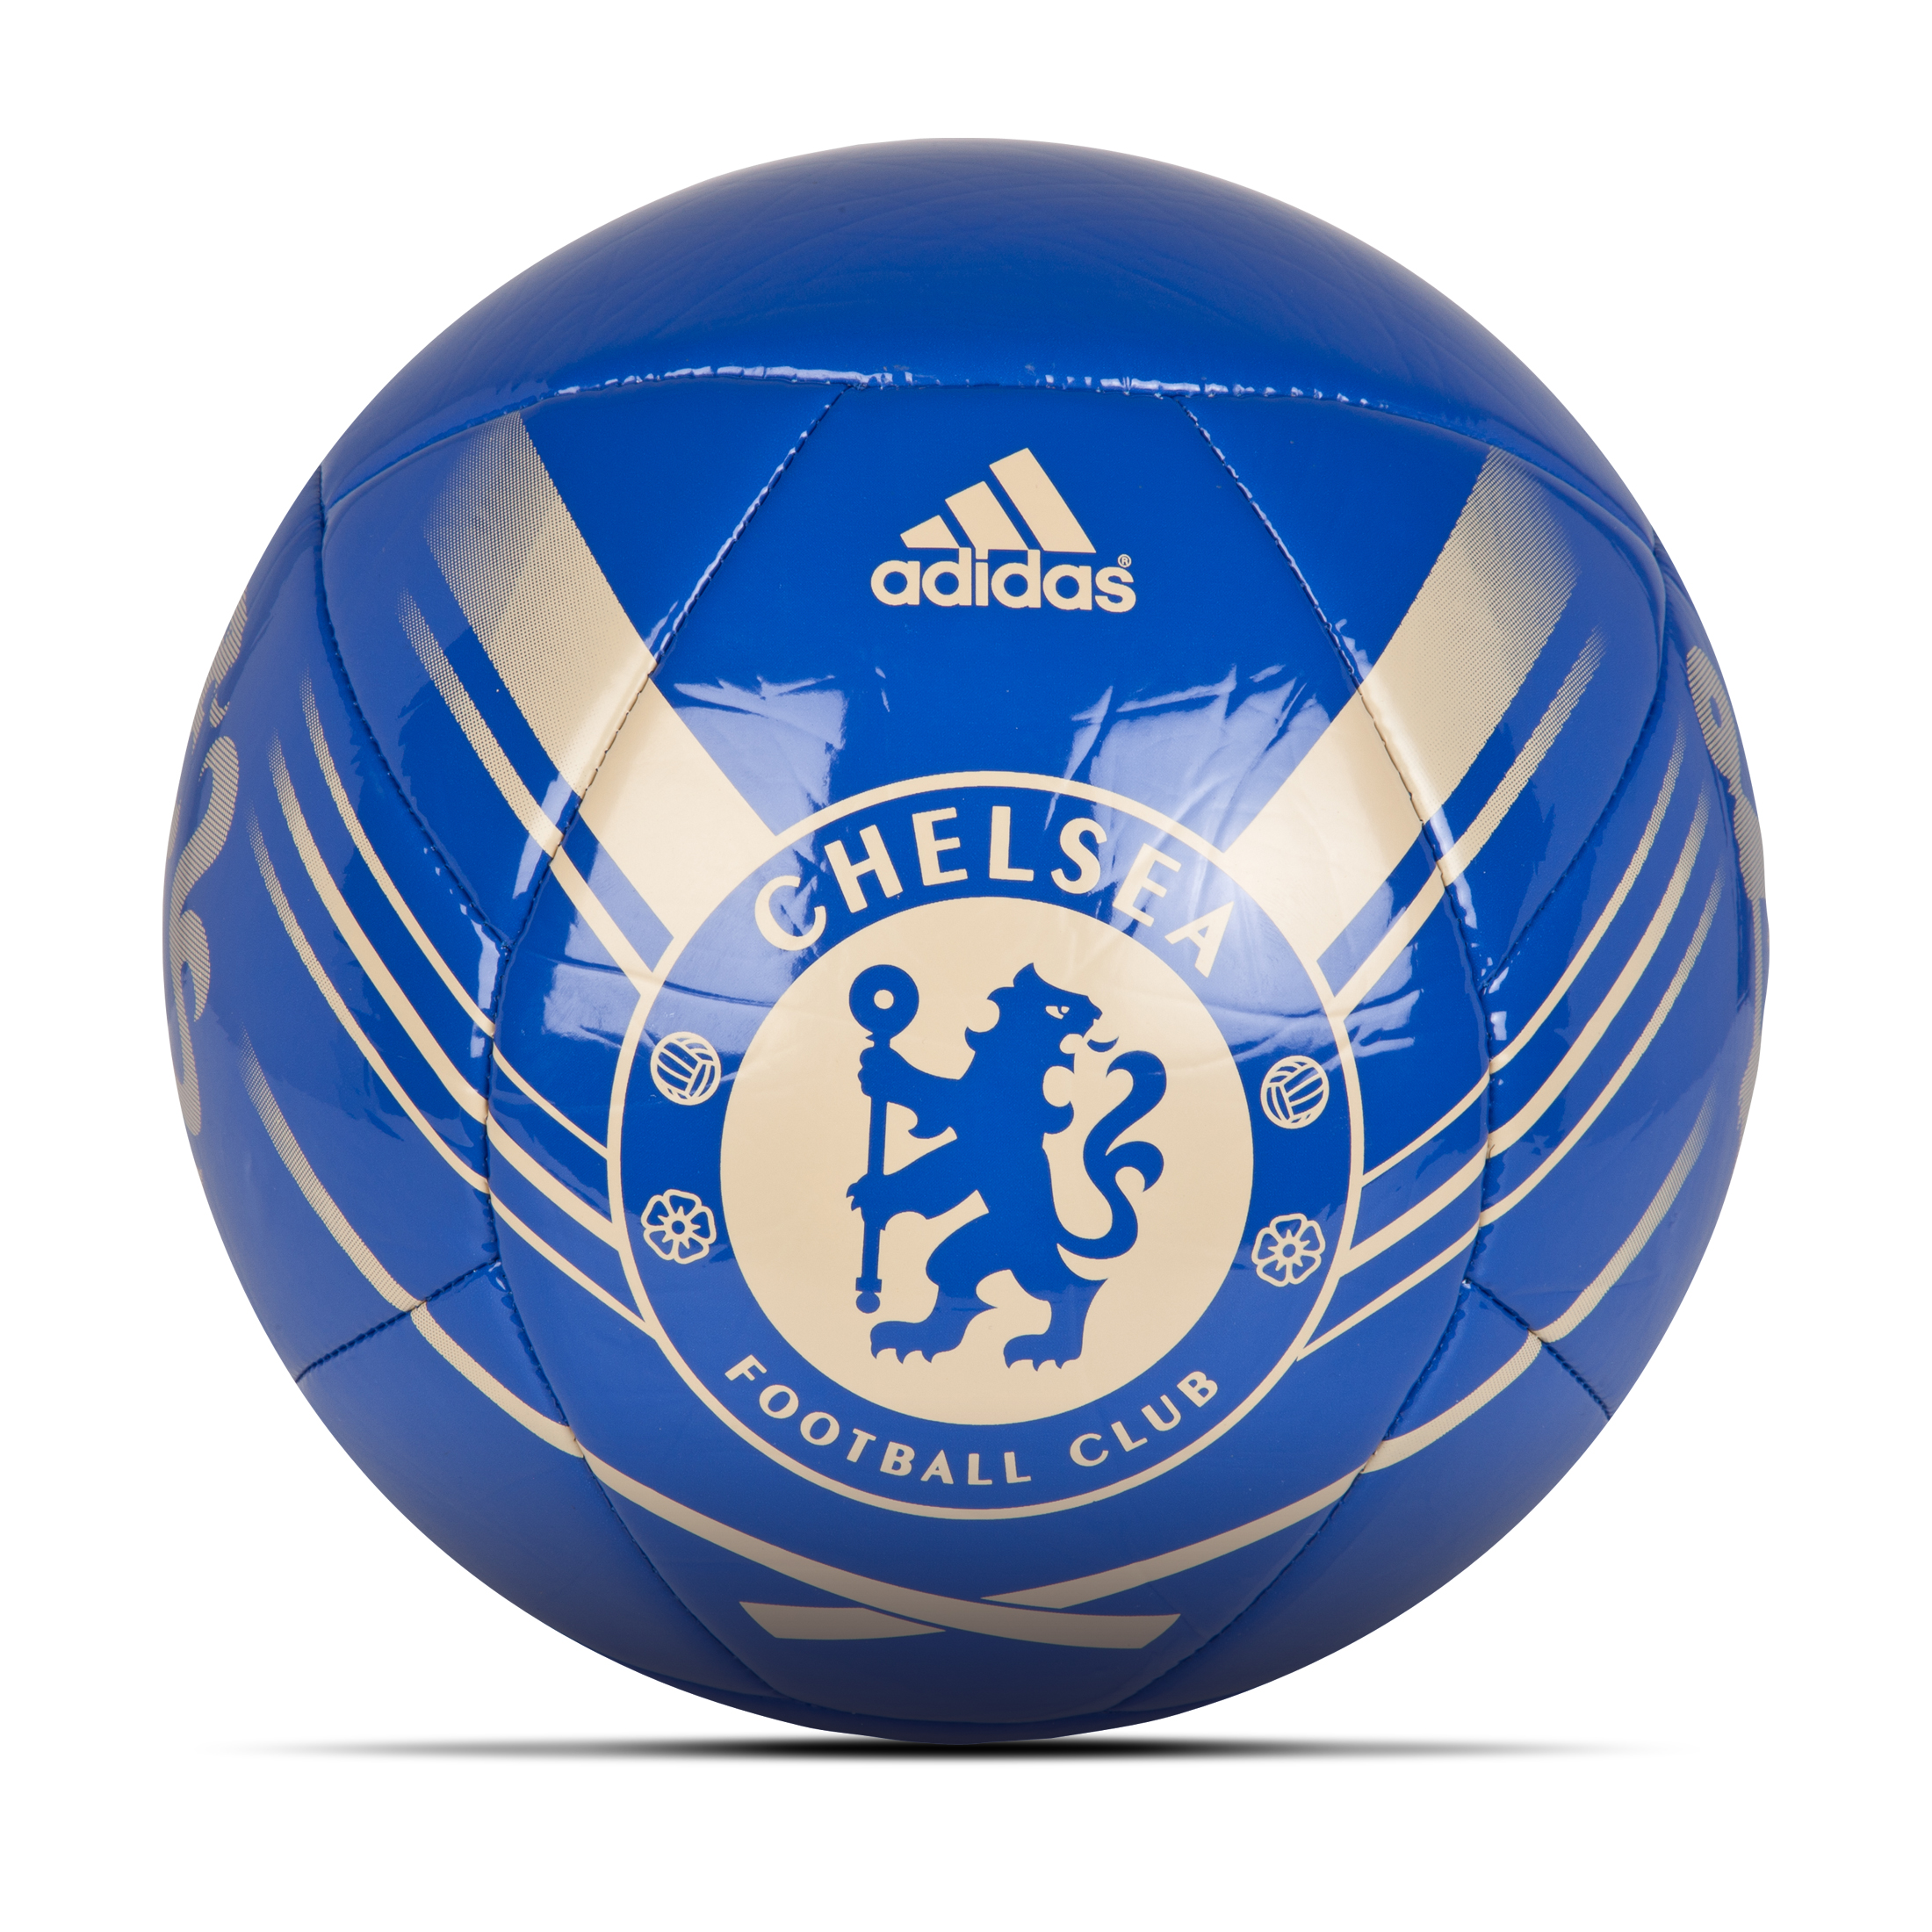 adidas Chelsea Crest Football - Cfc Reflex Blue/Light Football Gold Size 5